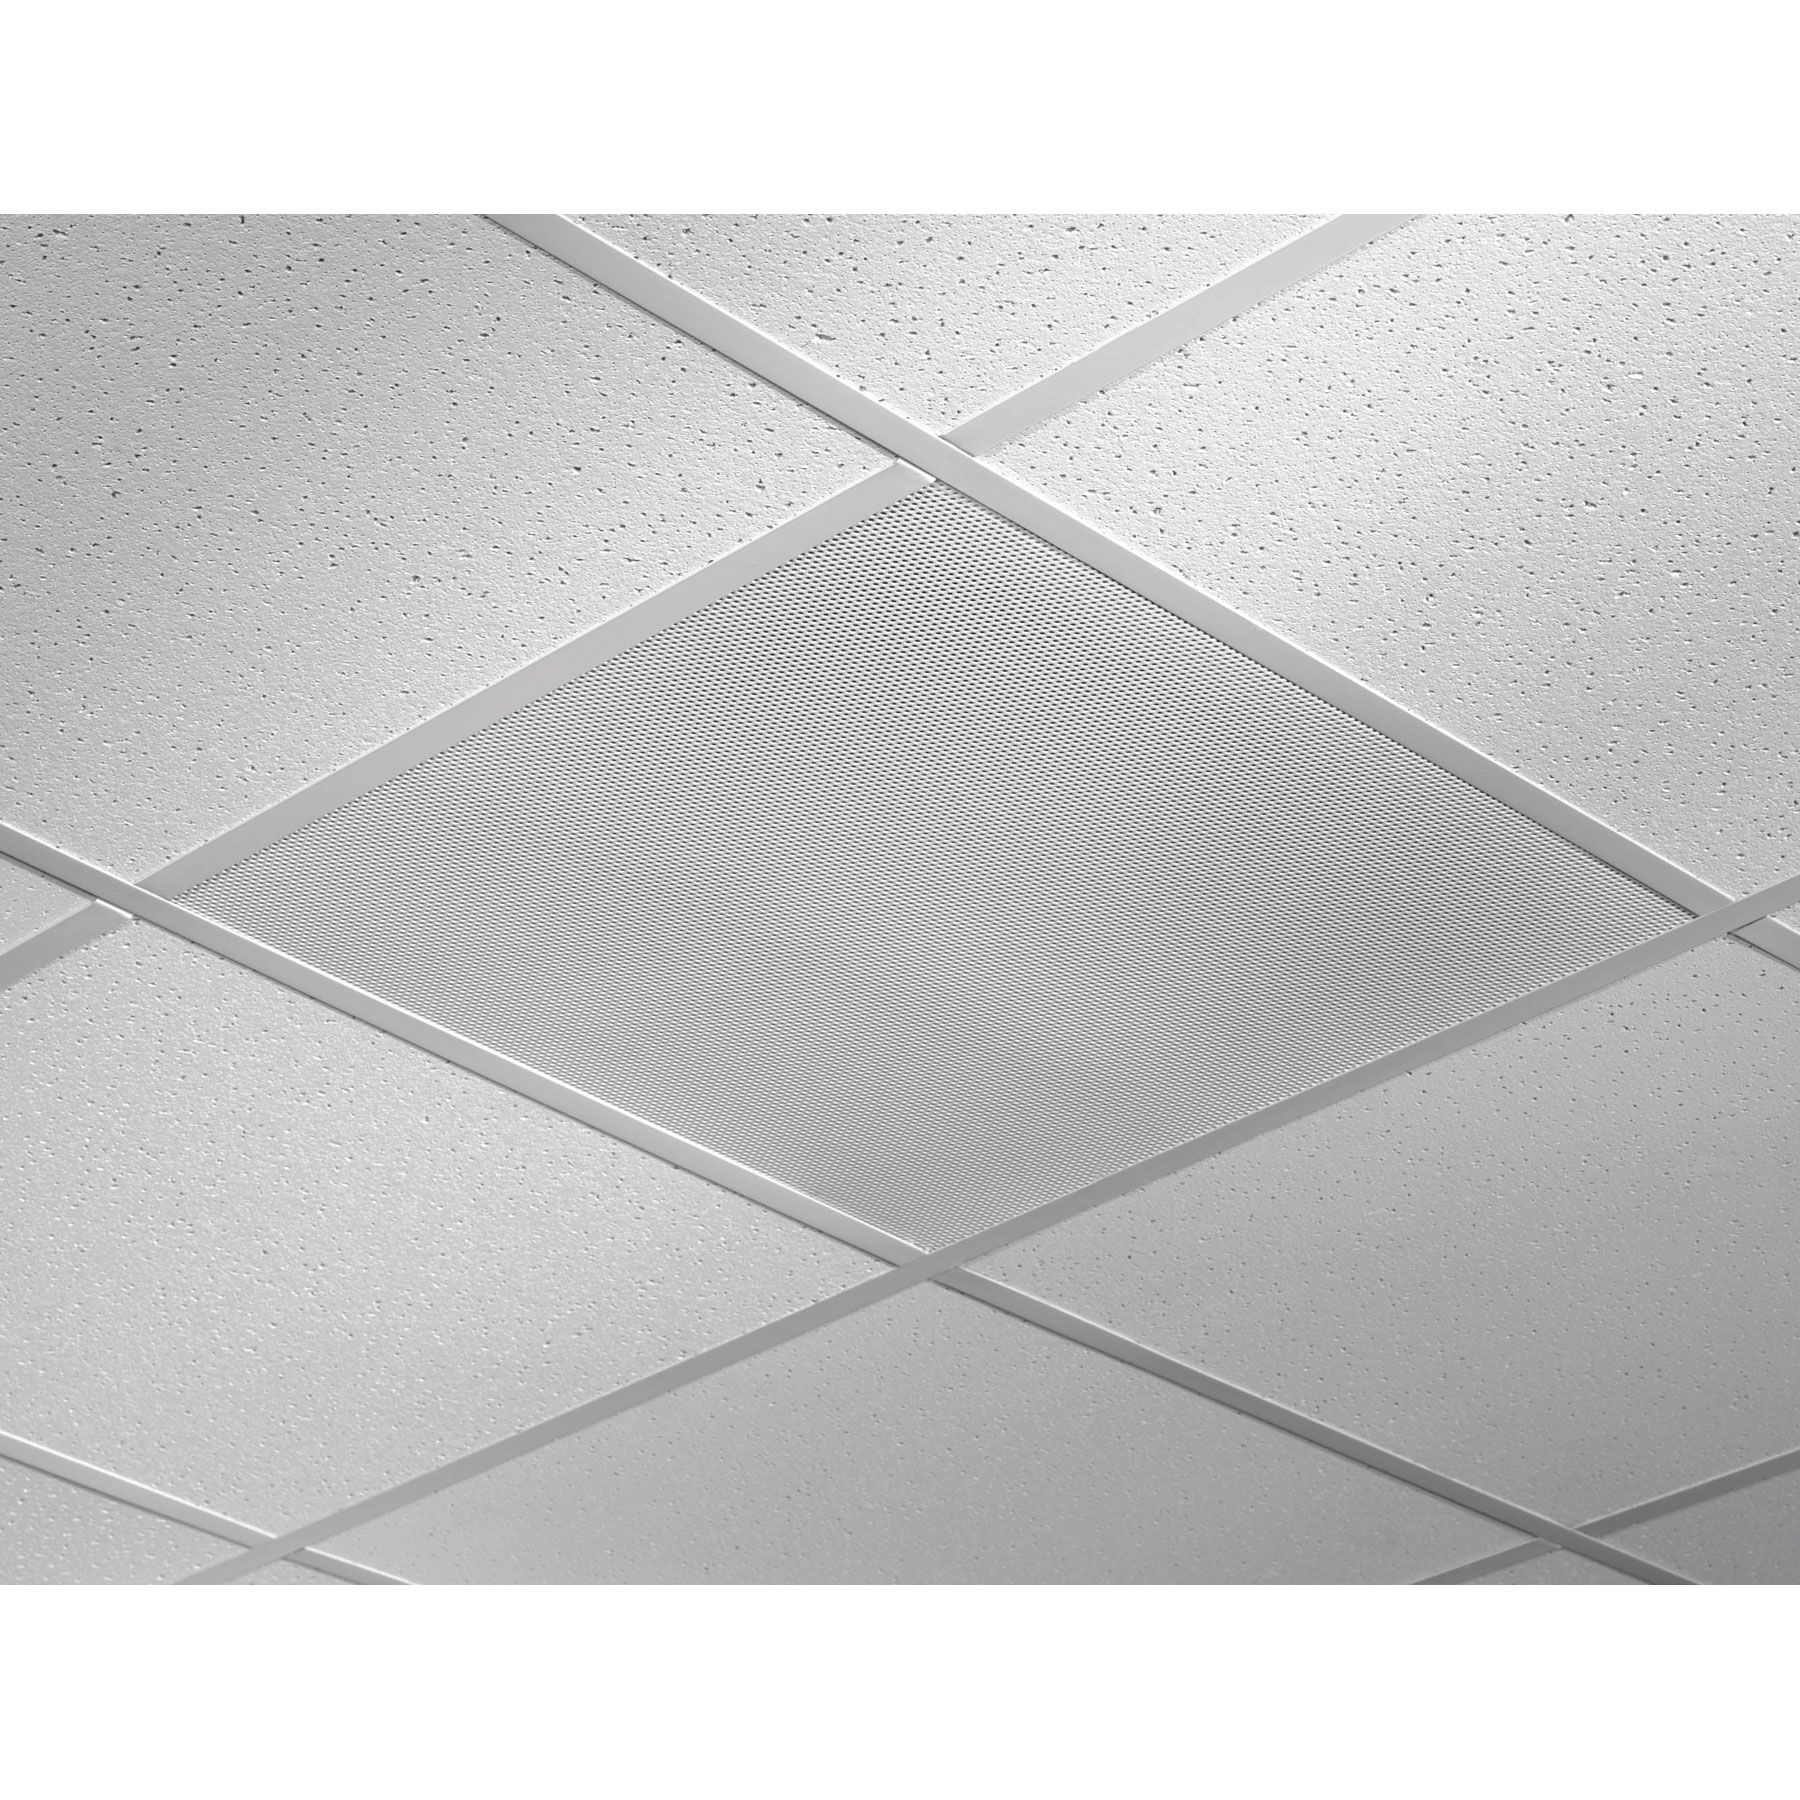 Ceiling Tile Speakers 22